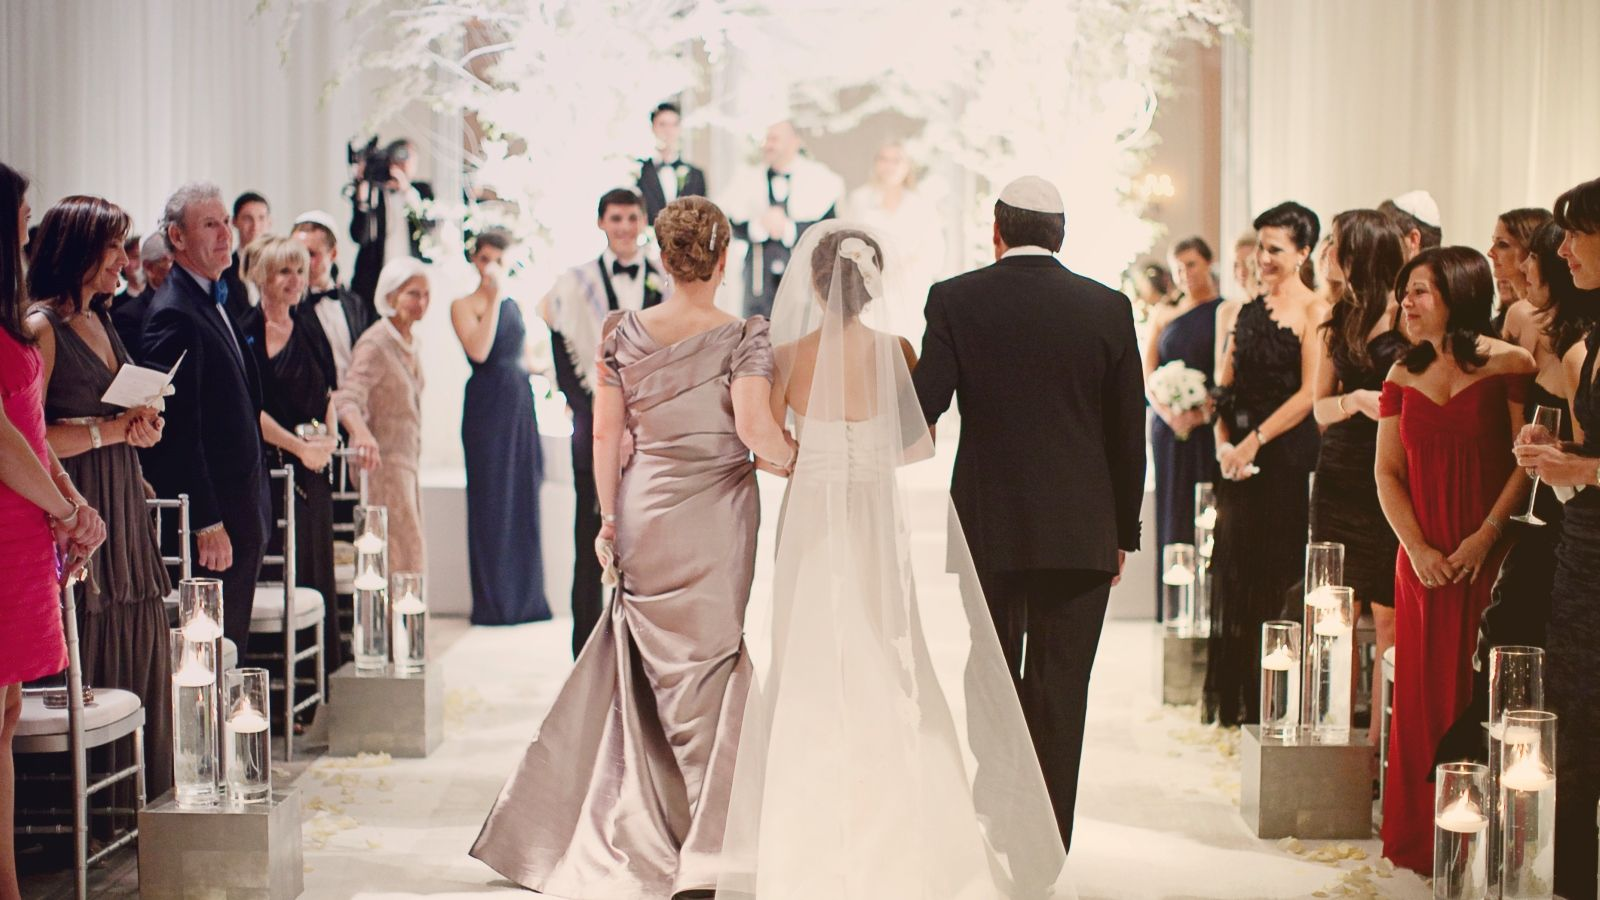 Weddings at The St. Regis Atlanta